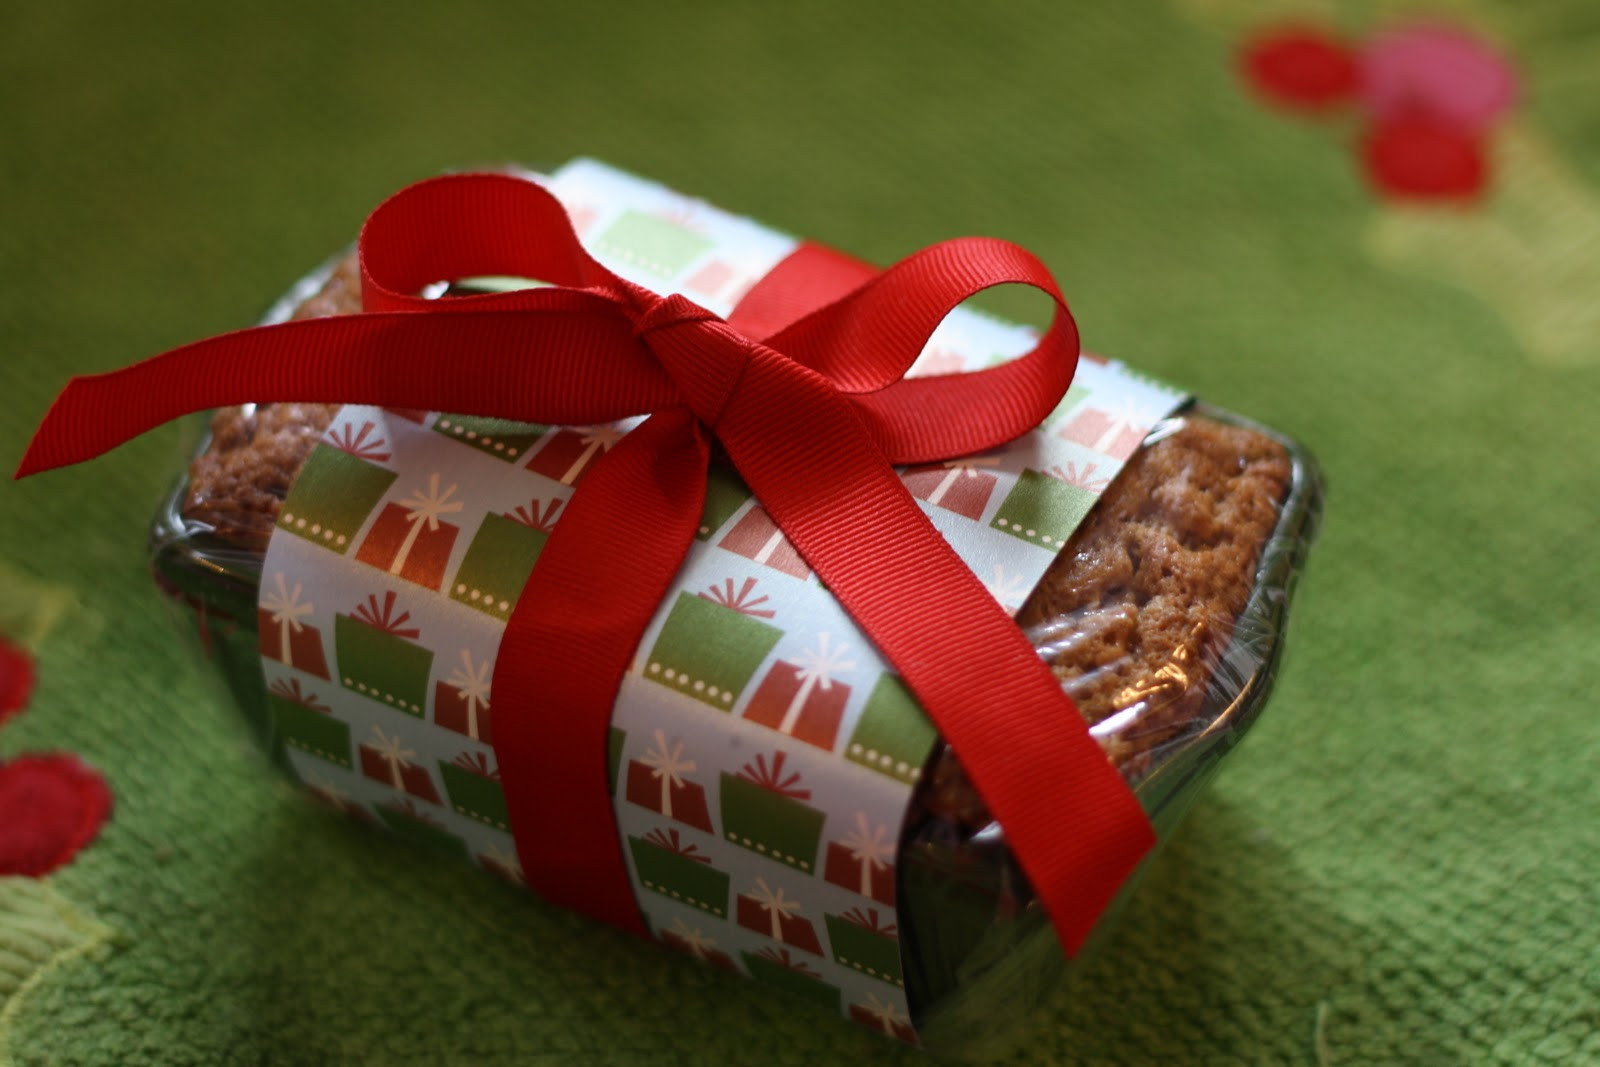 Christmas Bread Gifts  Keeping My Cents ¢¢¢ Frugal Neighbor Gifts Banana Nut Bread